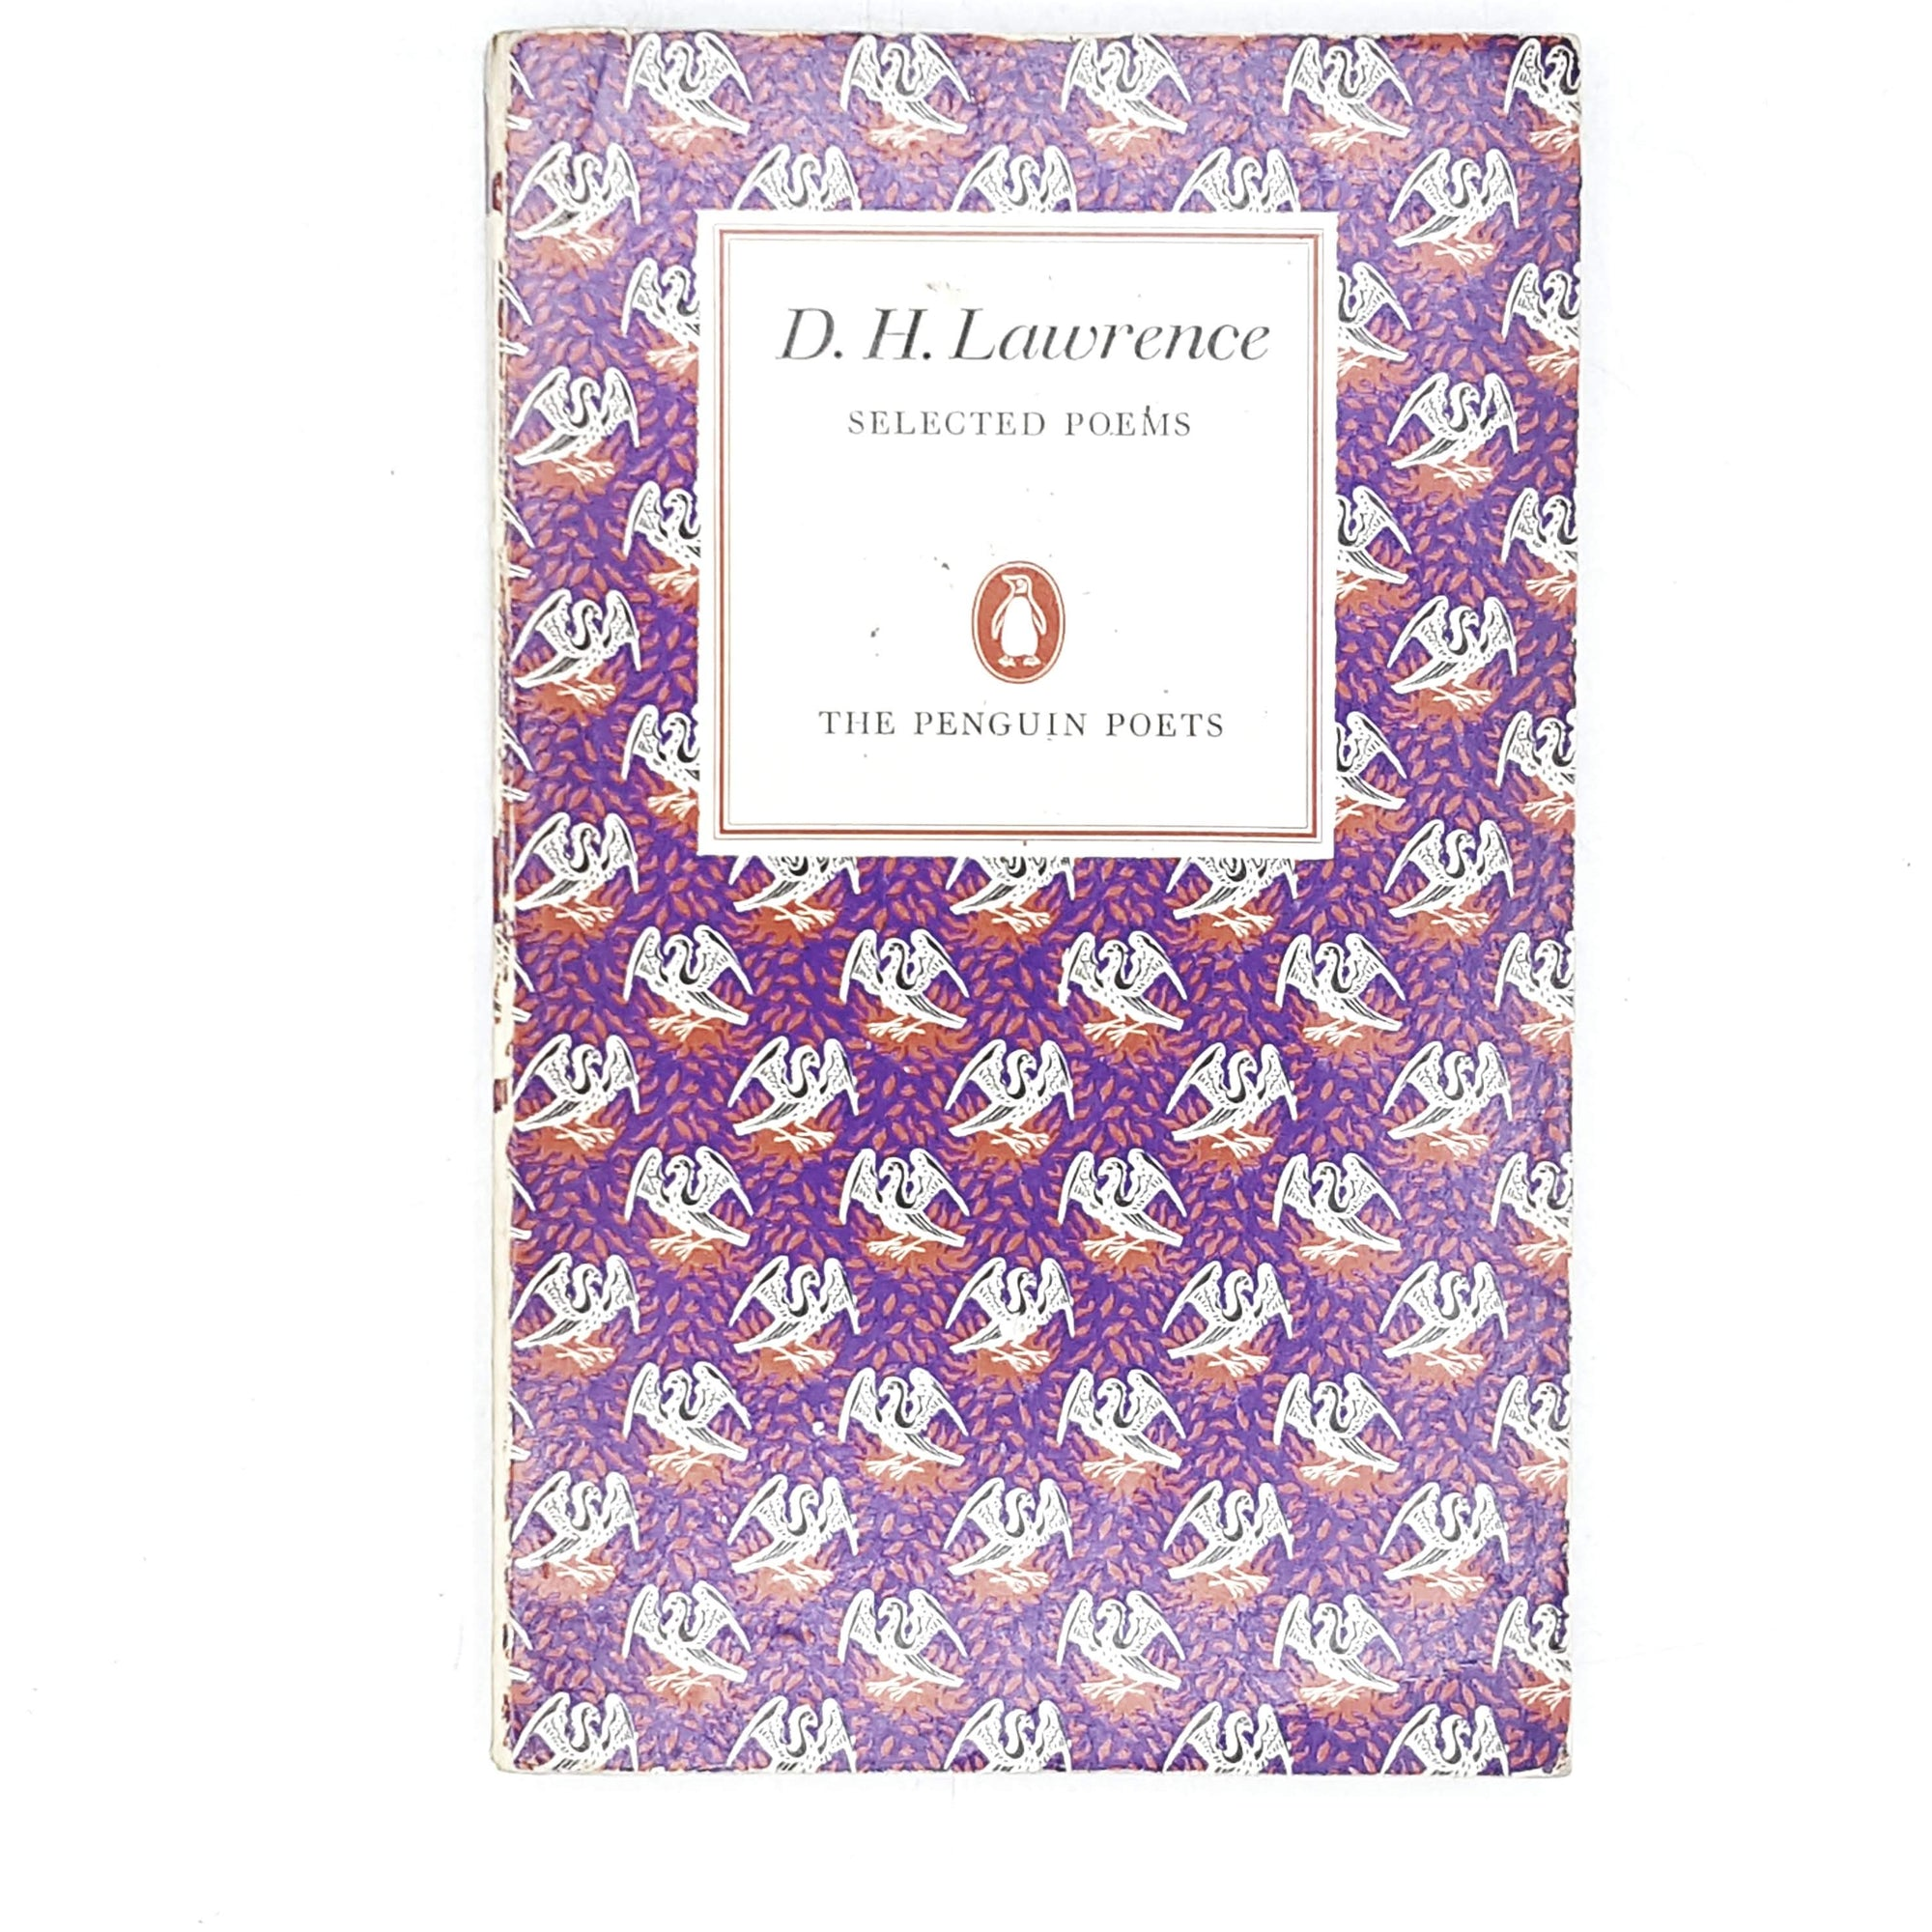 Penguin Poetry: D. H. Lawrence Selected Poems 1969